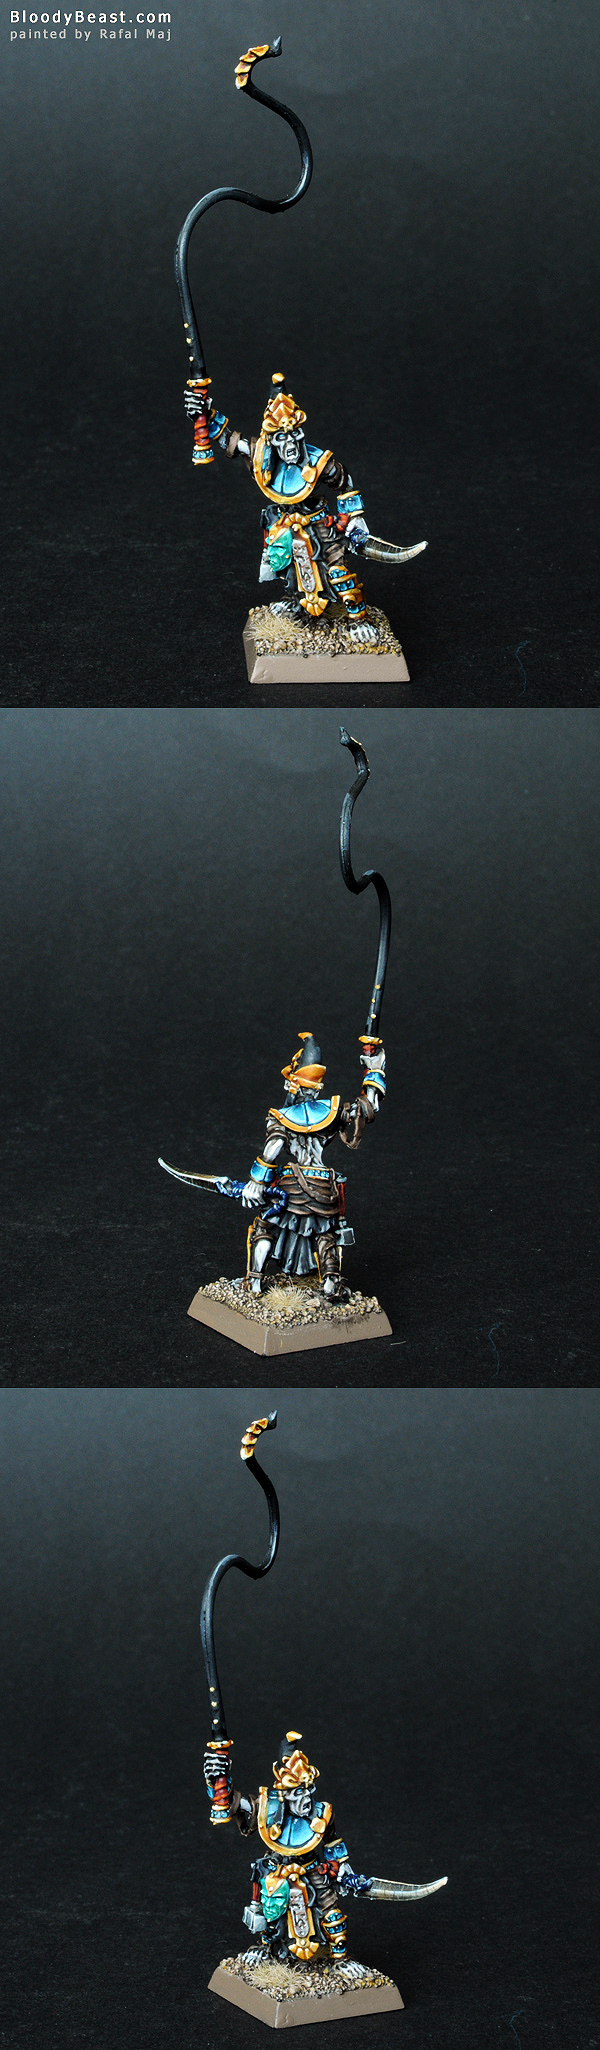 Tomb Kings Necrotect painted by Rafal Maj (BloodyBeast.com)